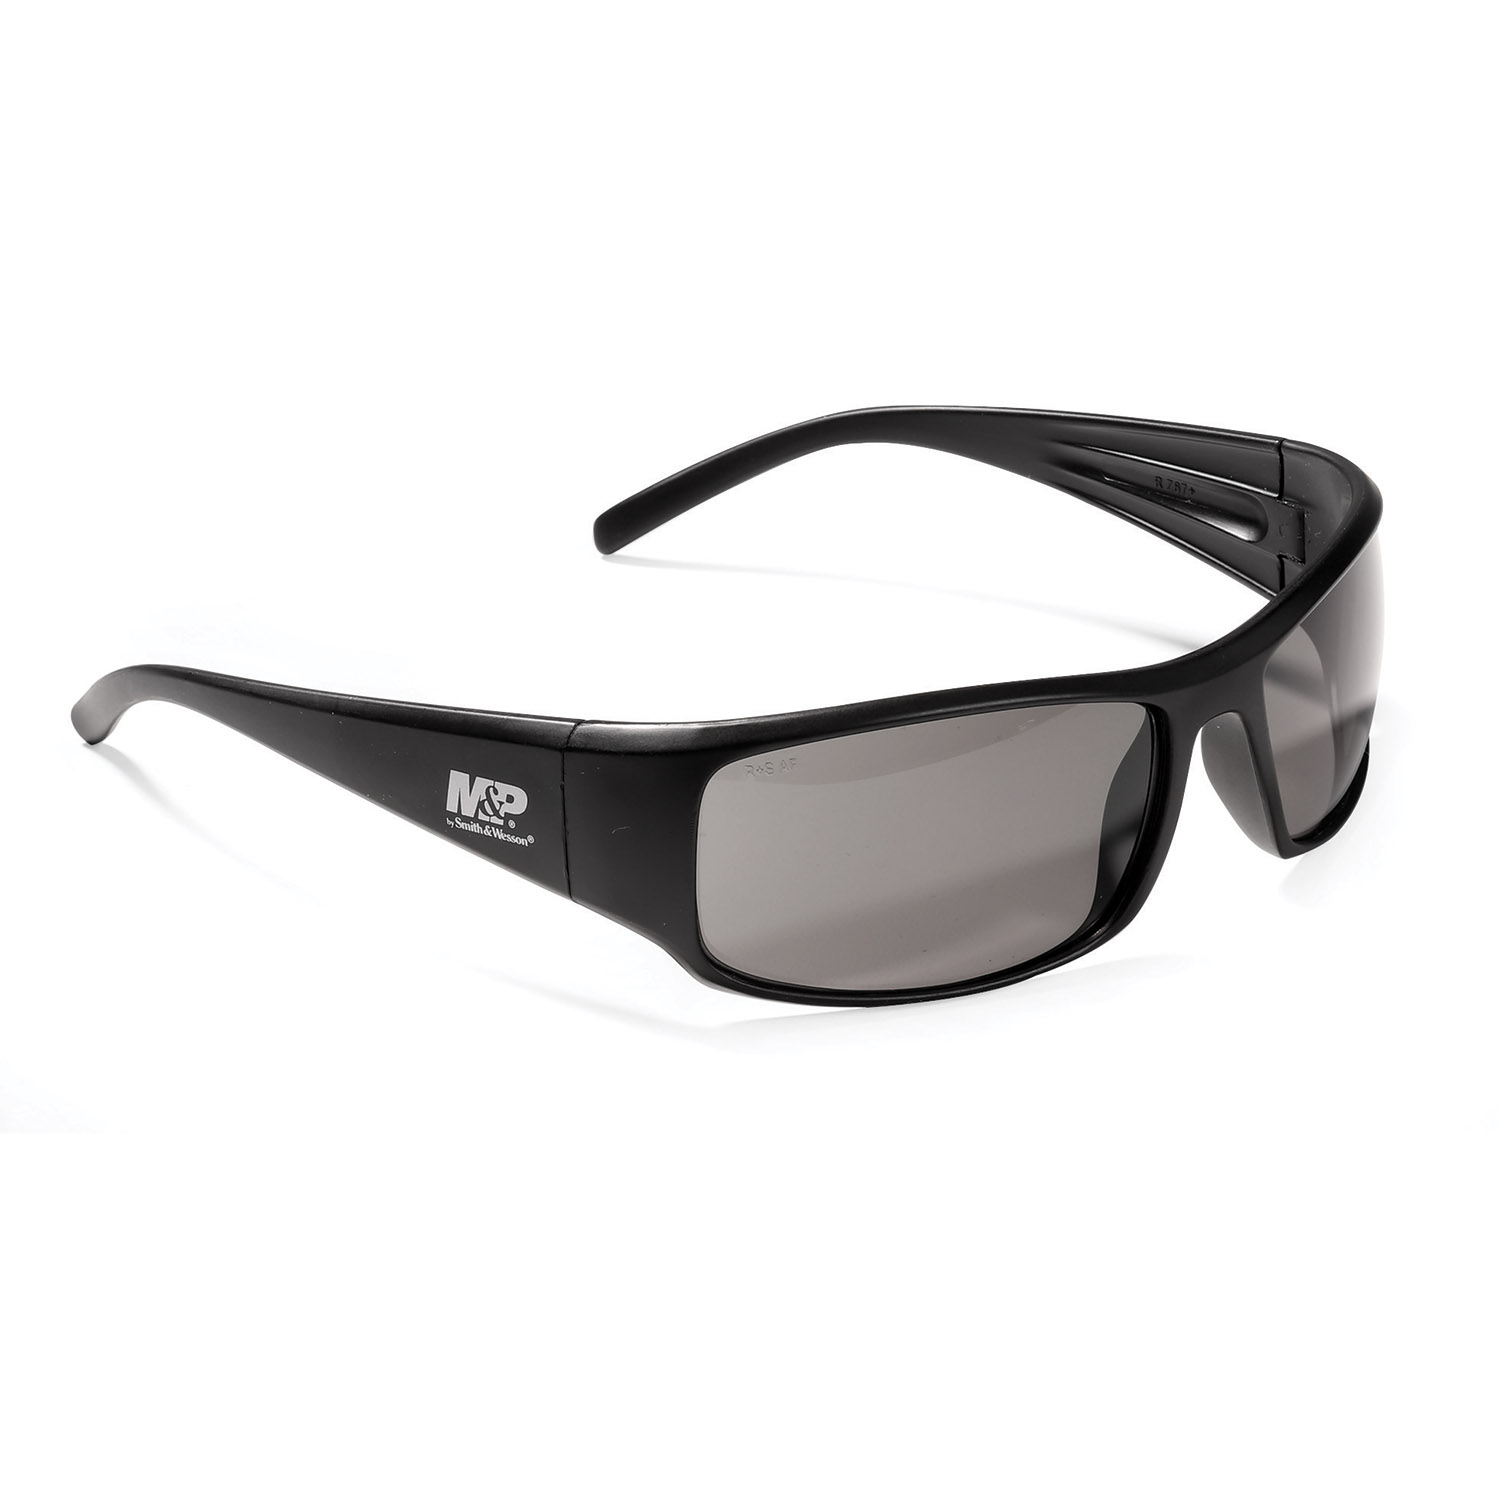 smith and wesson m and p anti fog safety glasses at galls